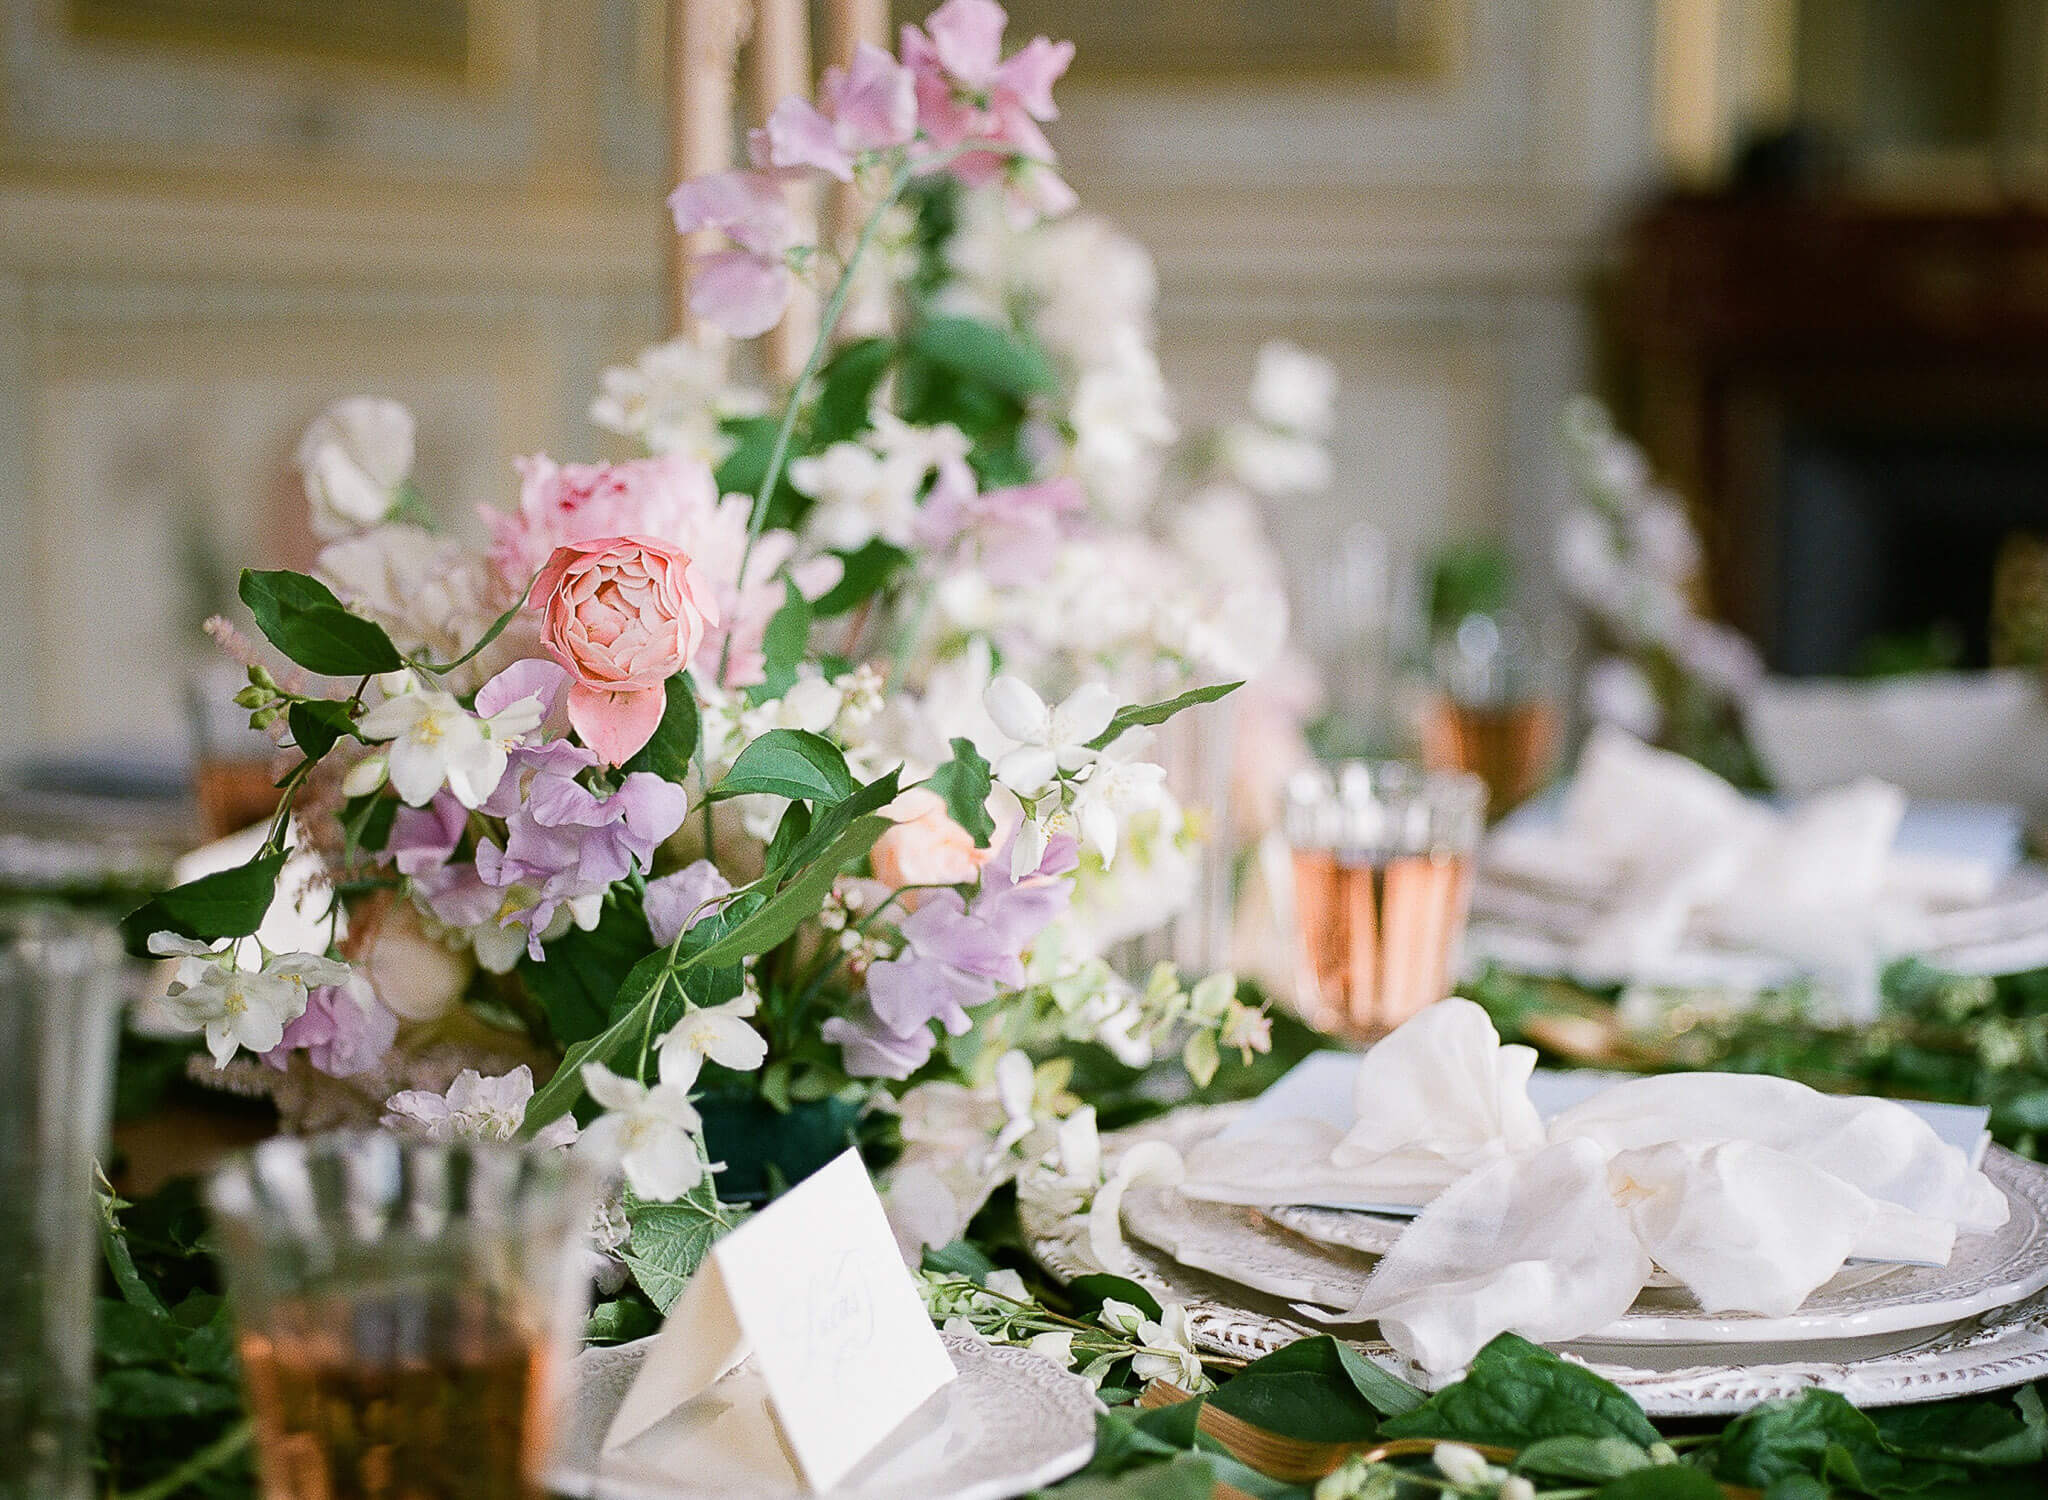 Wedding reception table setting floral decoration by Floraison Paris by Portugal Wedding Photographer